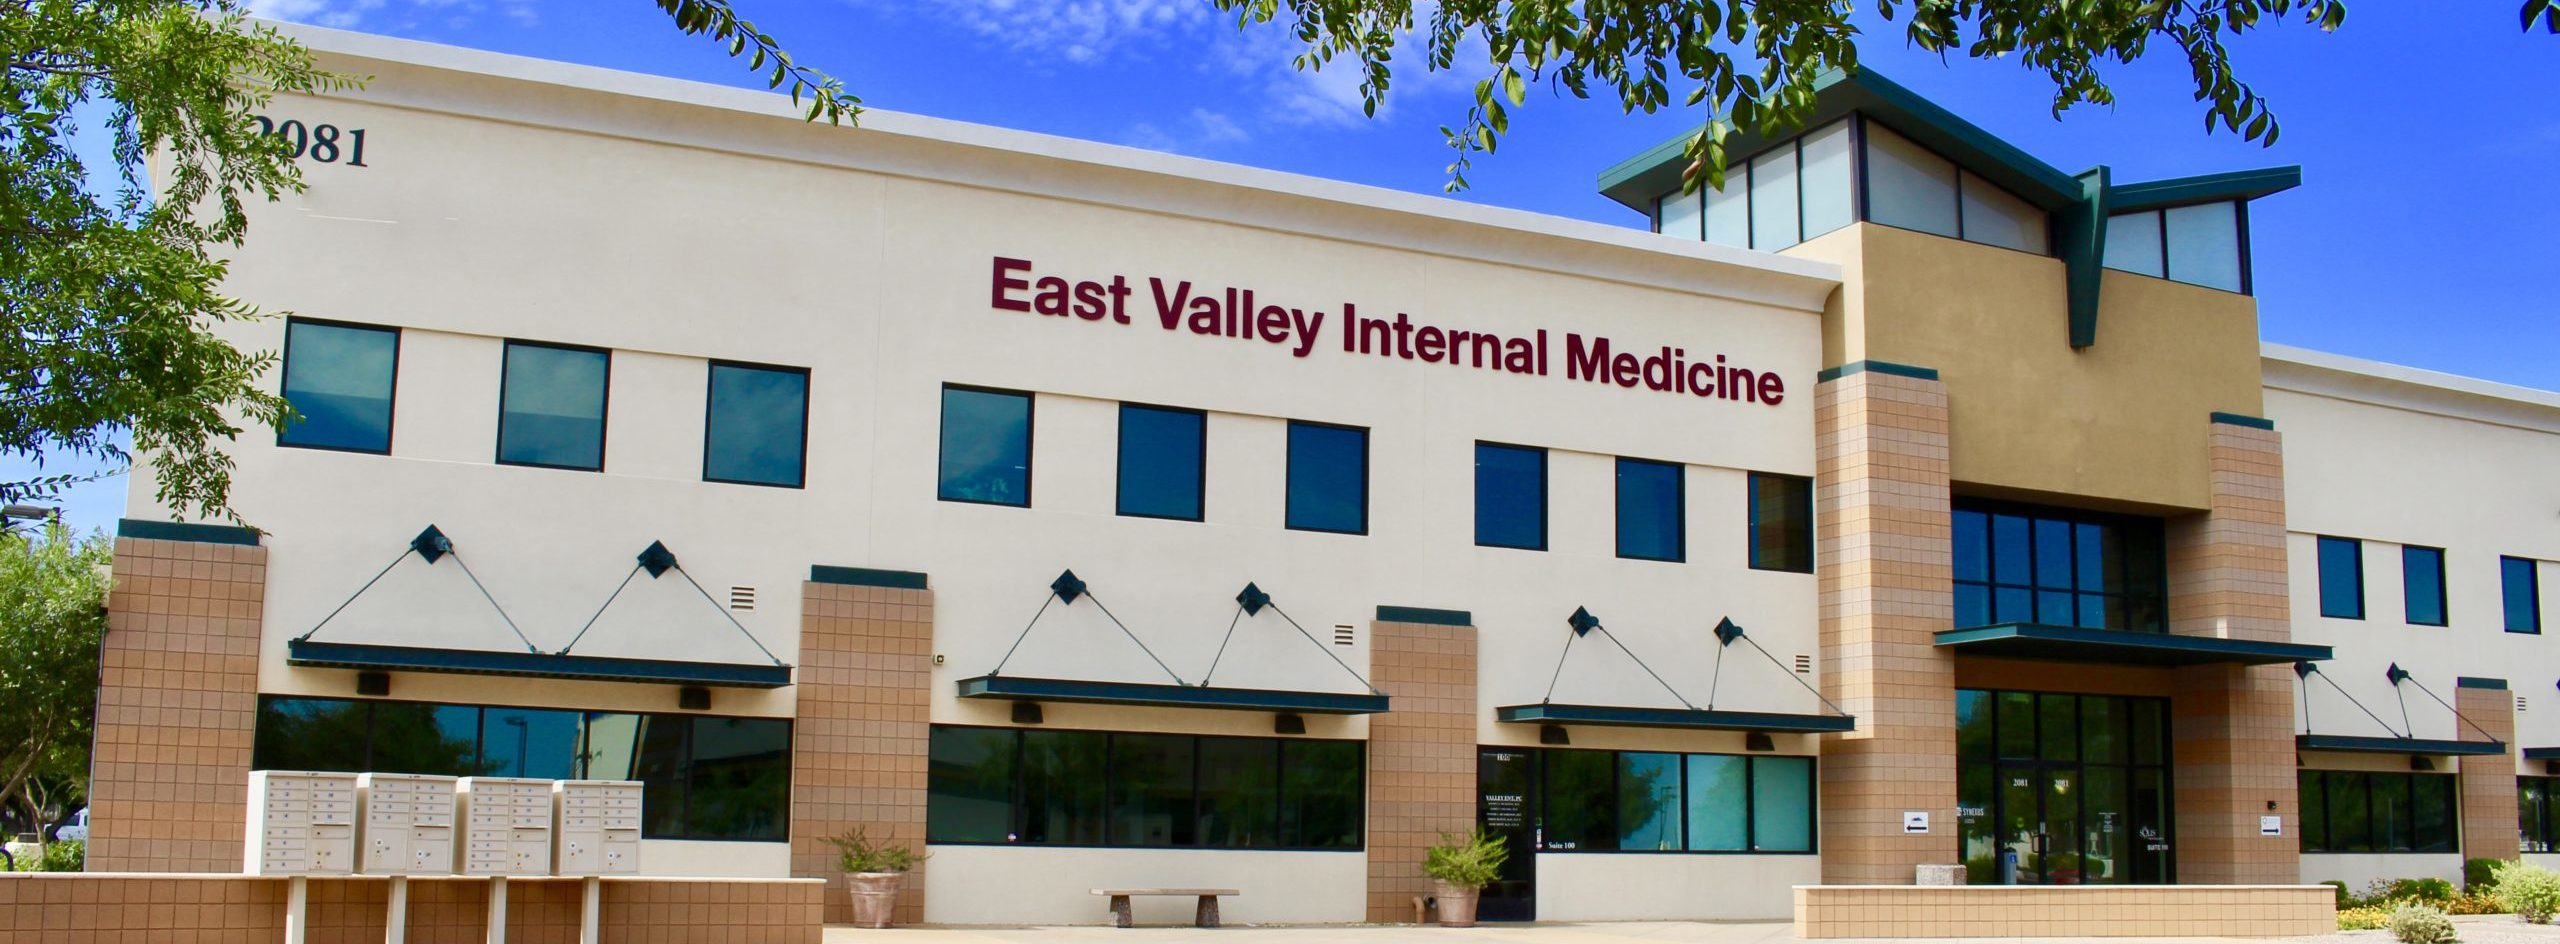 East Valley Internal Medicine